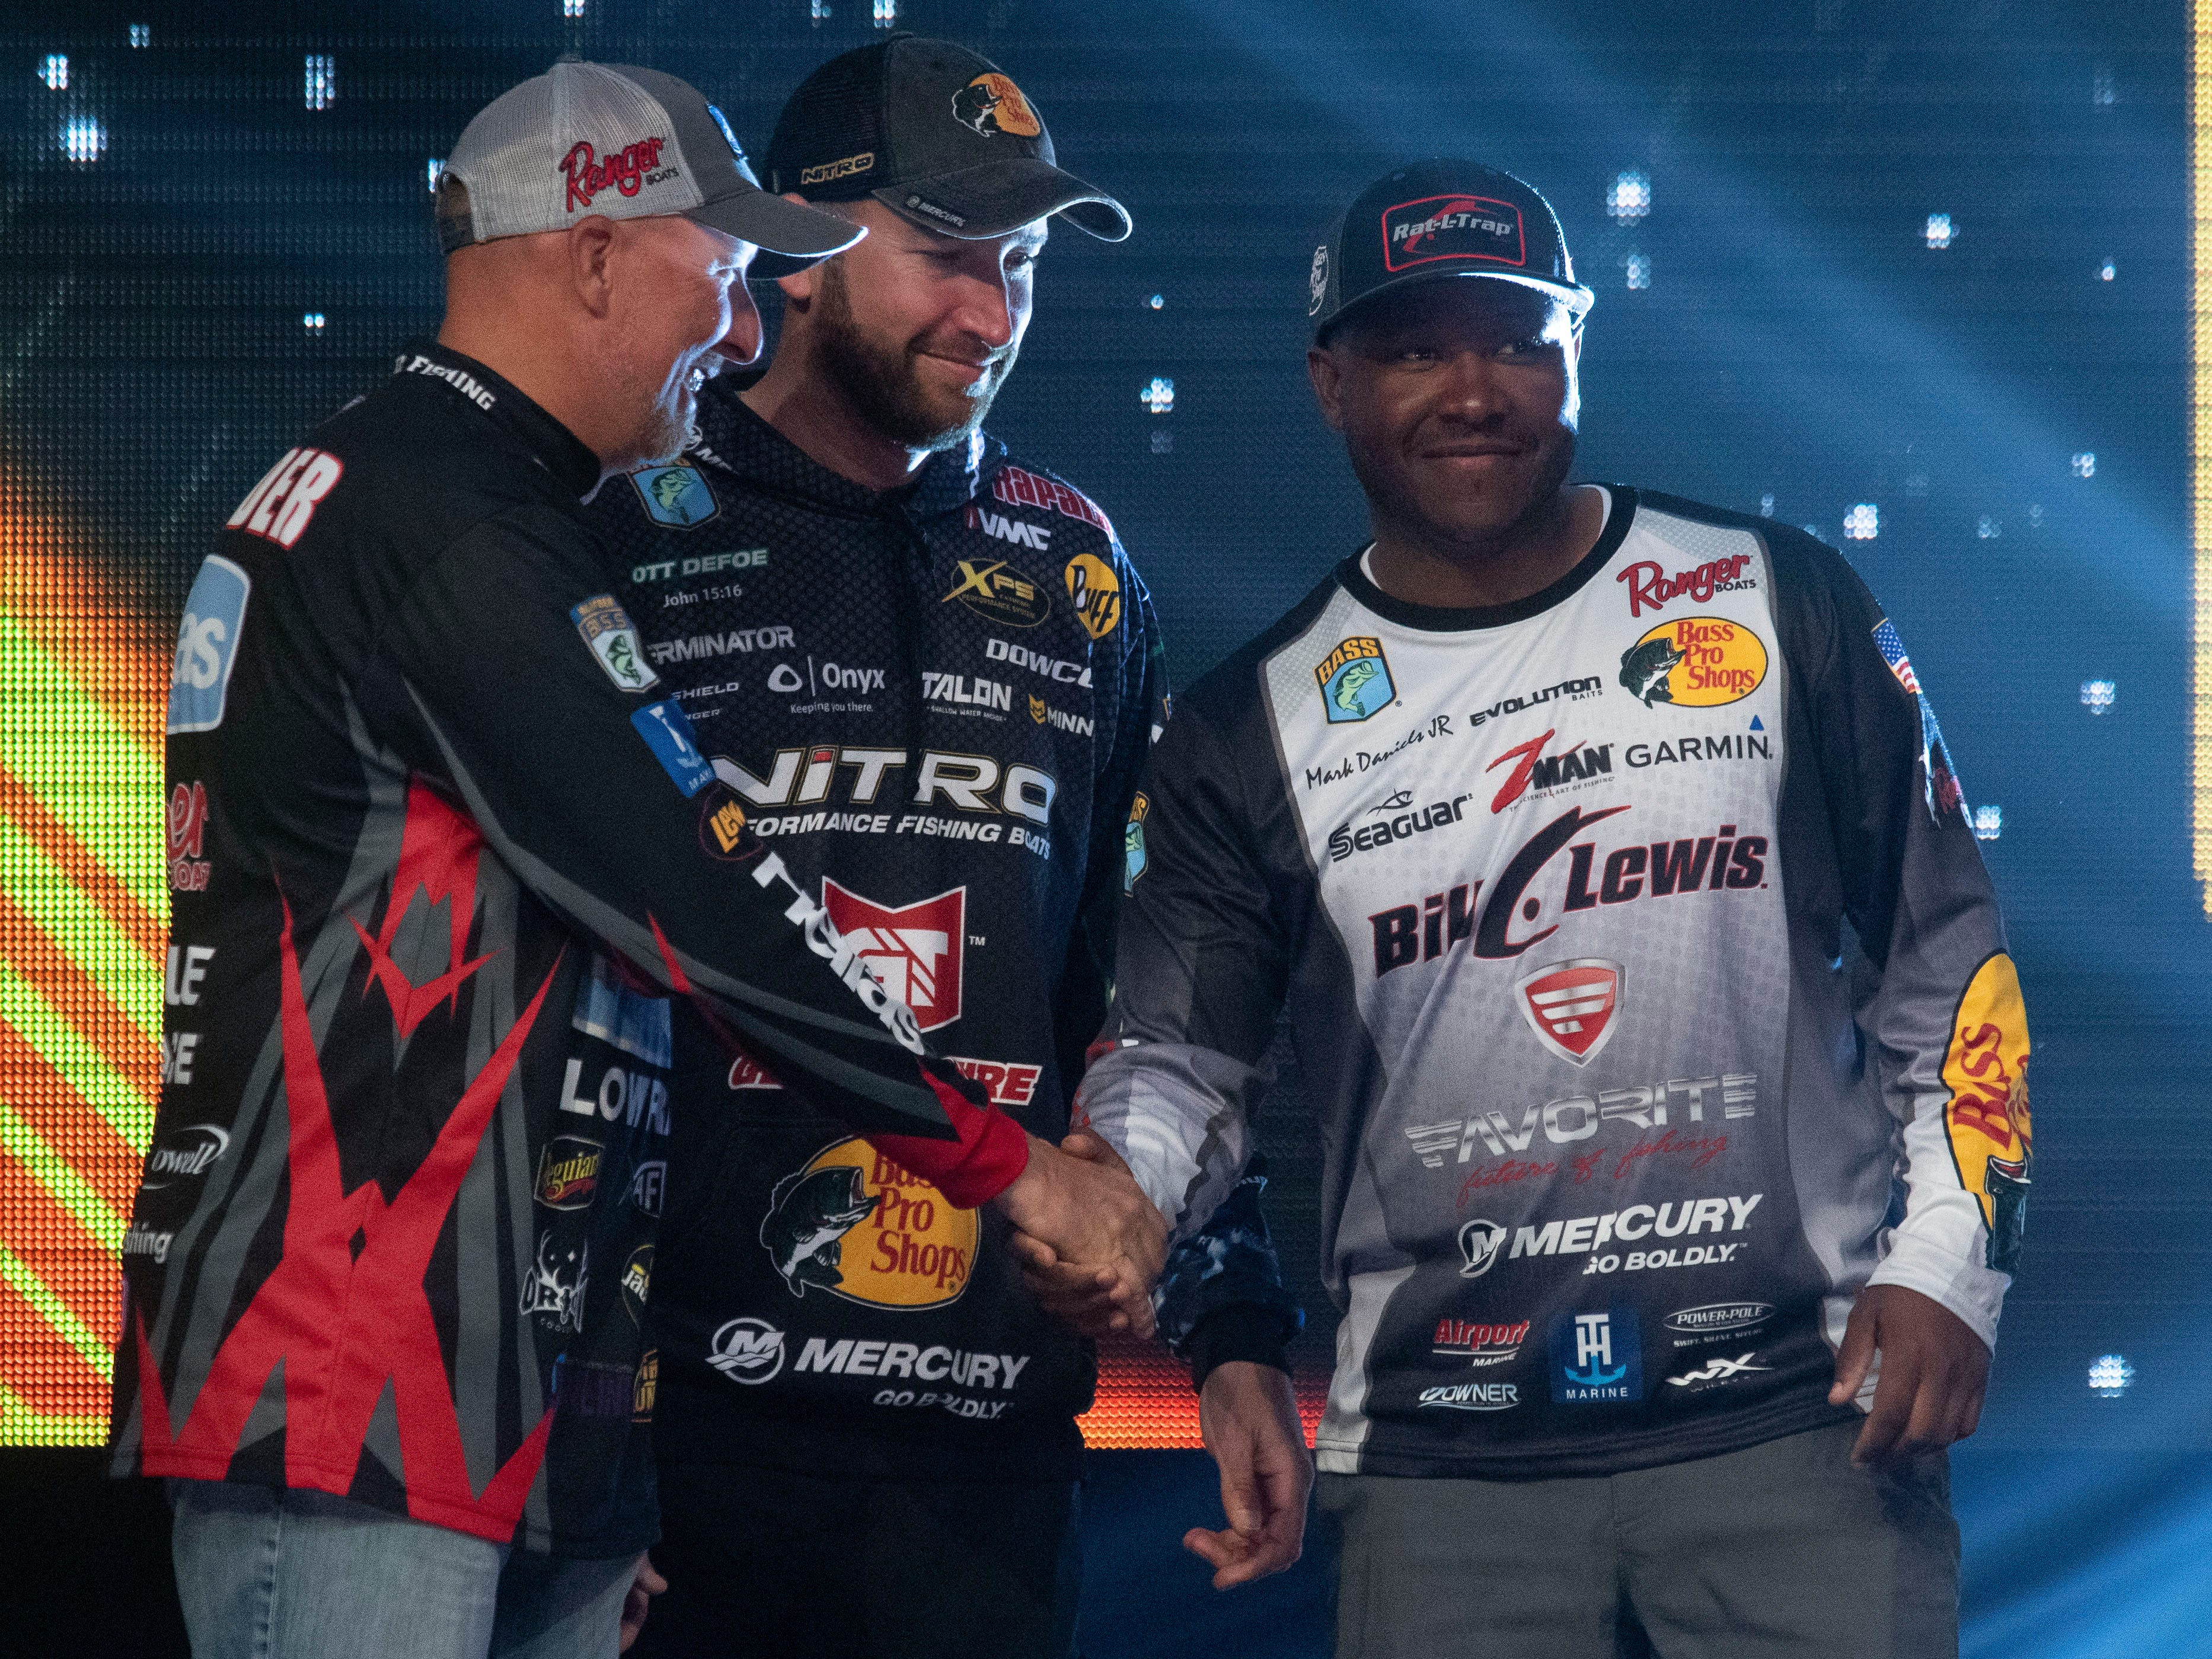 Spring City, TN resident Wesley Strader, left, and Knoxville native Ott DeFoe greet fellow angler Mark Daniels Jr. on stage as three of the six finalist in the weigh-in on the final day of the Bassmaster Classic at Thompson-Boling Arena on Sunday, March 17, 2019.